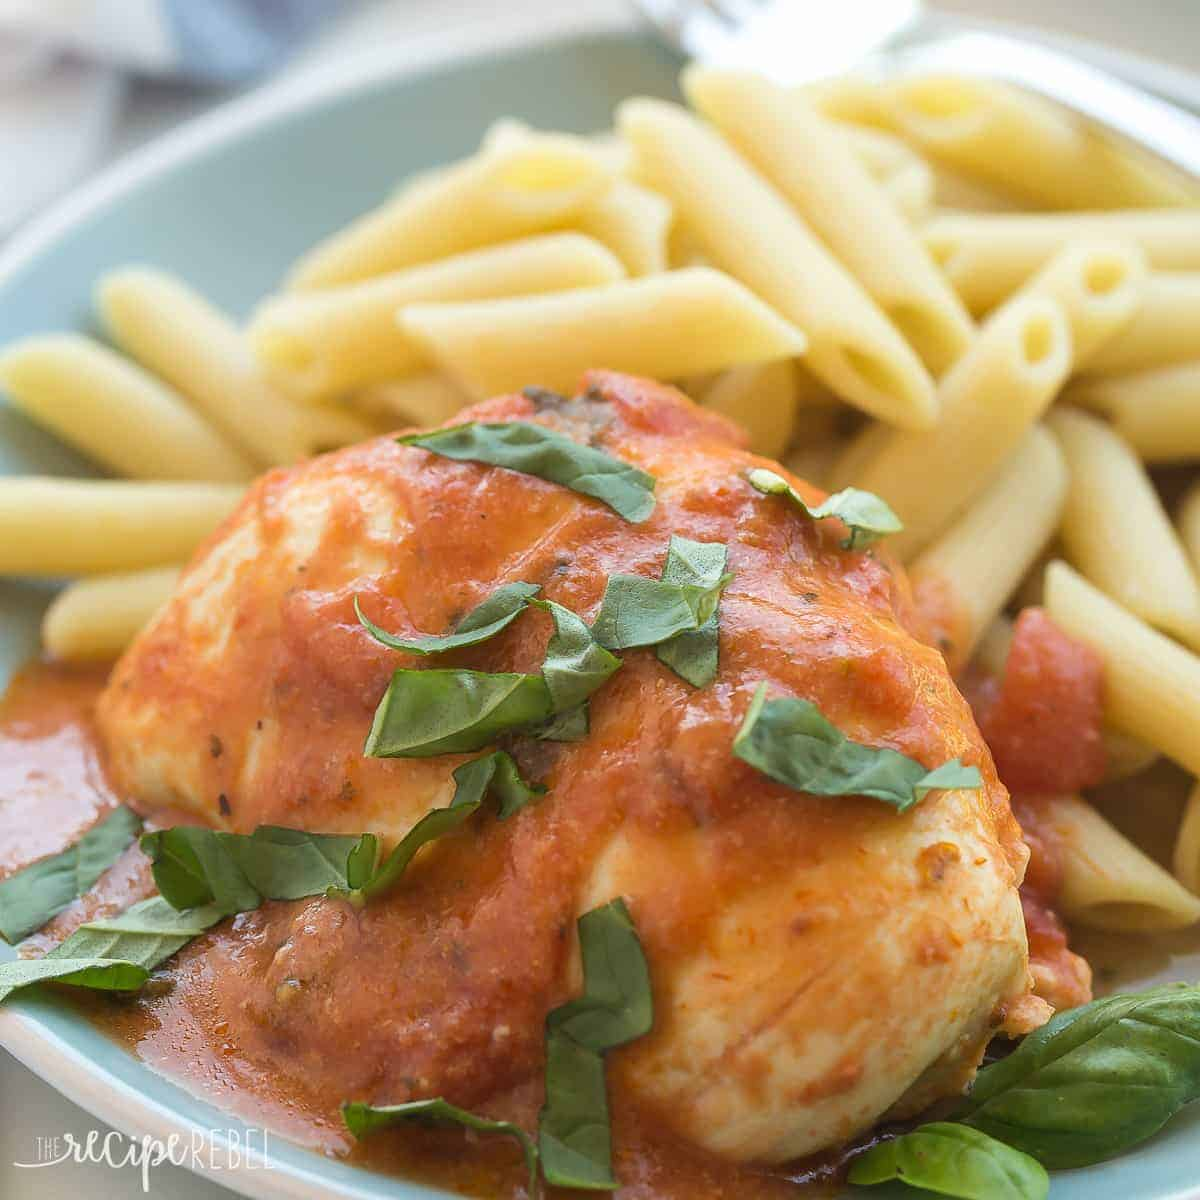 This Slow Cooker Creamy Tomato Basil Chicken is SO easy and flavorful, you wouldn't believe it only has 5 ingredients! The perfect easy dinner recipe for busy weeknights!